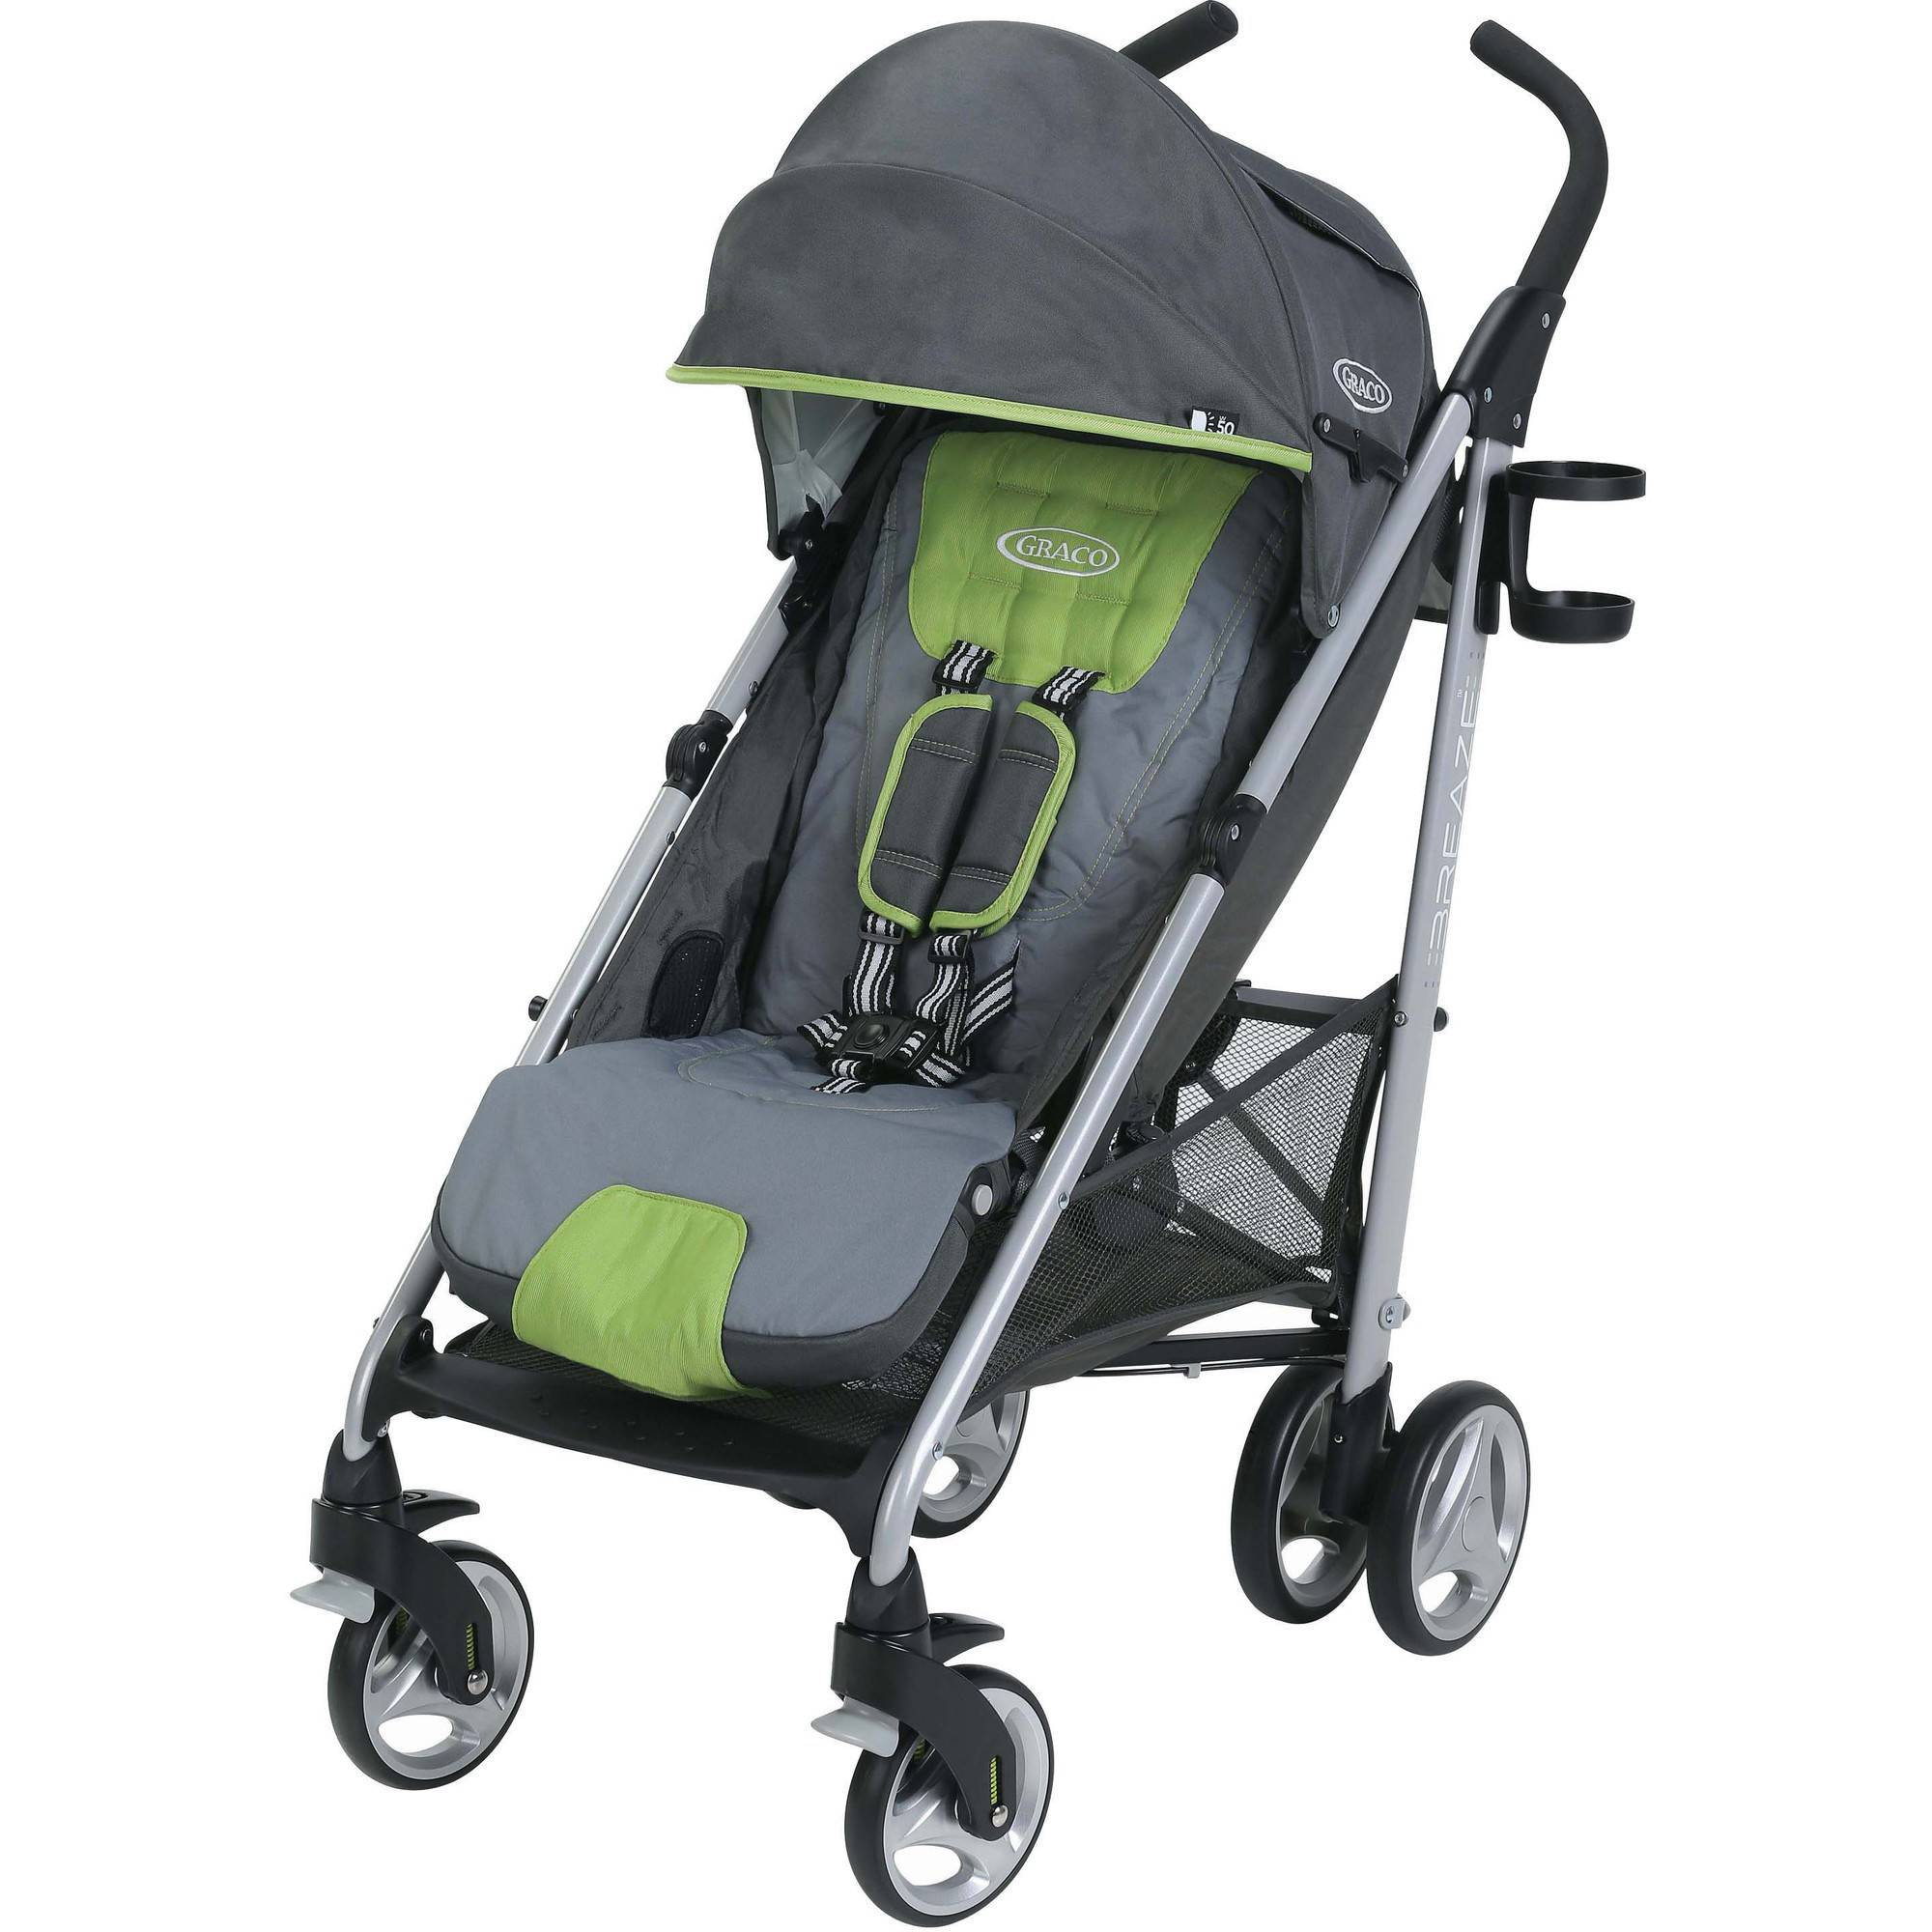 Graco Breaze Click Connect Umbrella Stroller, Piazza by Graco